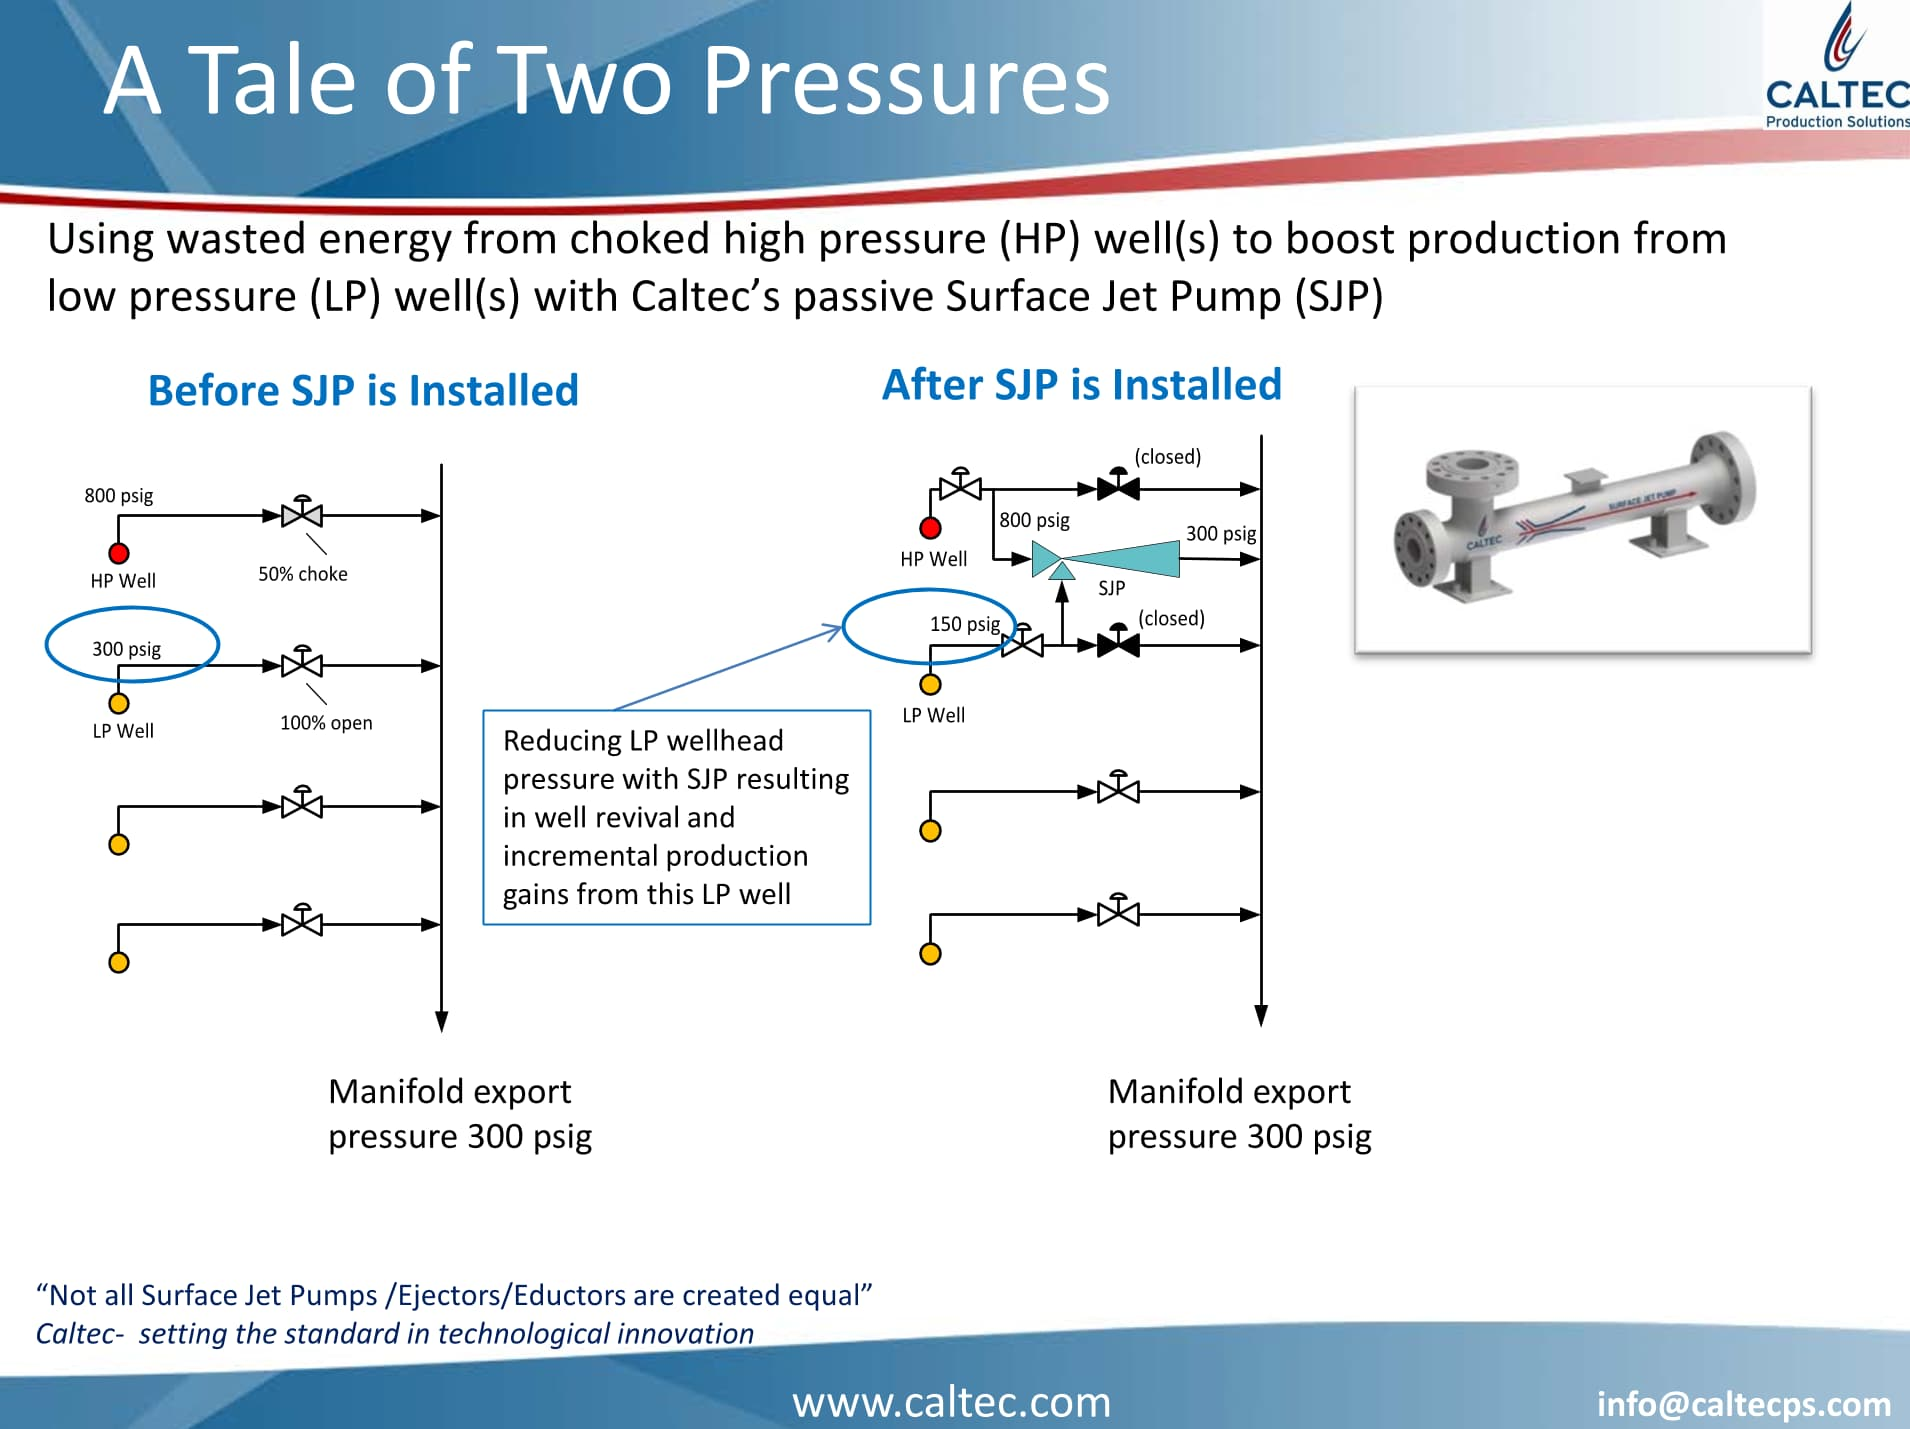 A Tale of Two Pressures and Caltec Surface Jet Pump